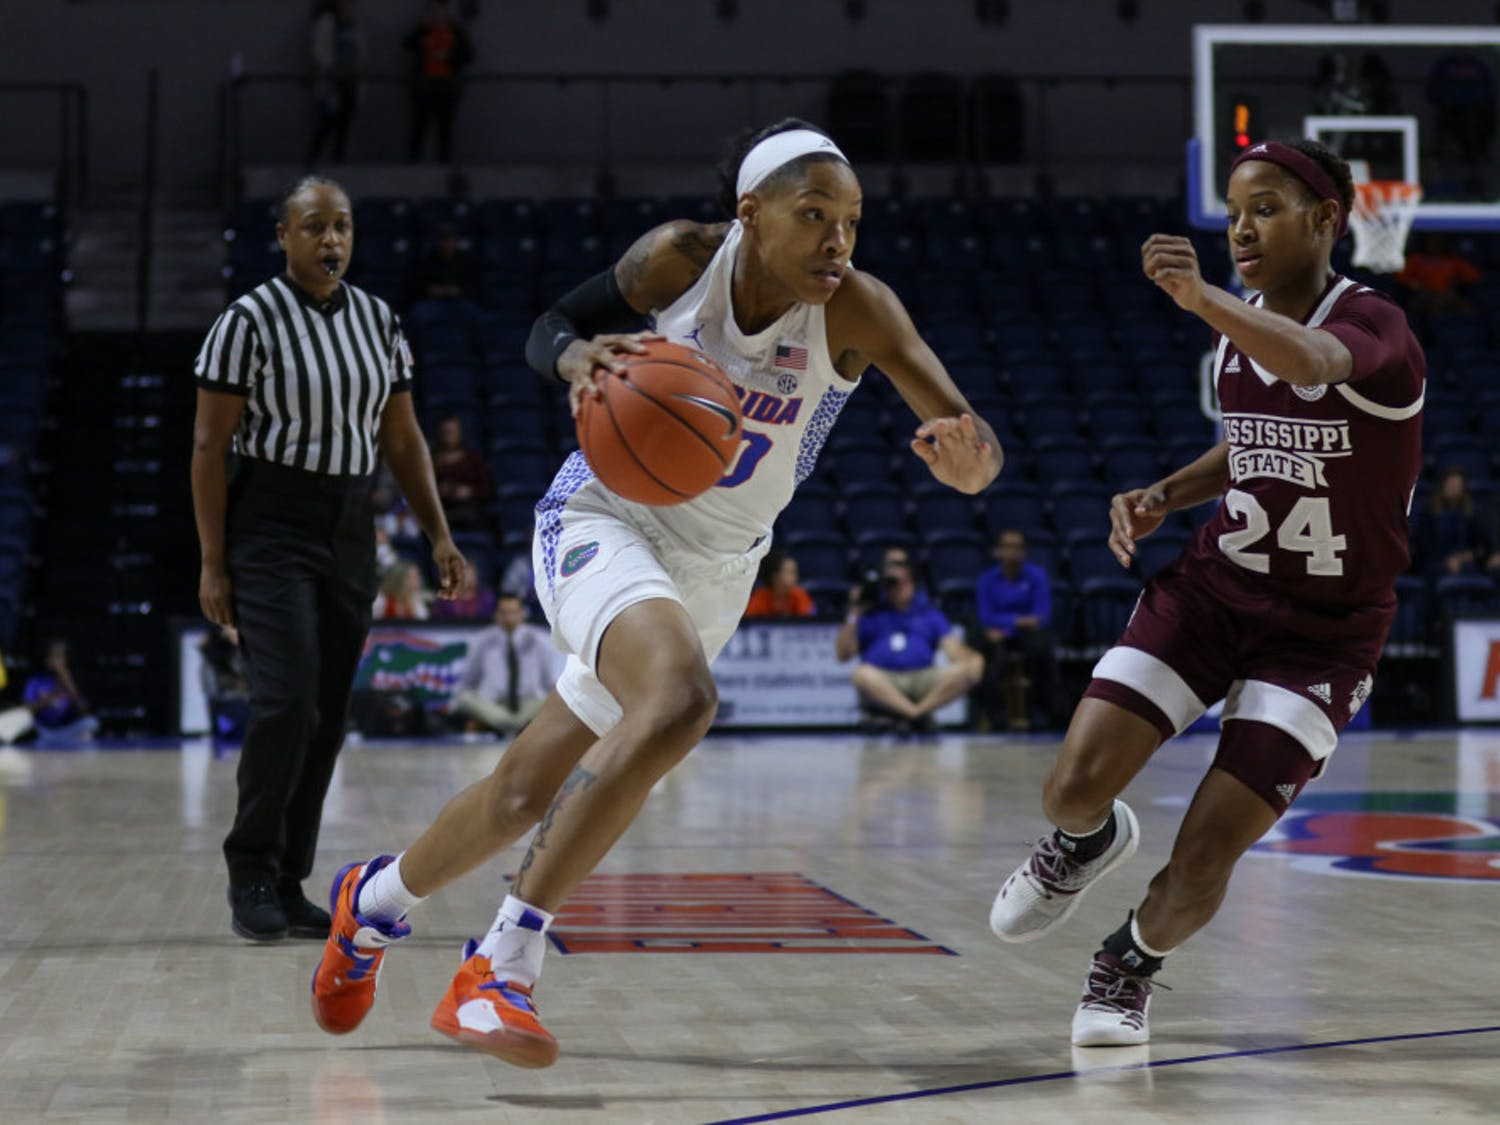 Florida guard Delicia Washington is expected to return for Thursday's game against Tennessee. She took a hit to the head against Mississippi State on Jan. 24 that forced her to sit out a game as she went through concussion protocol.